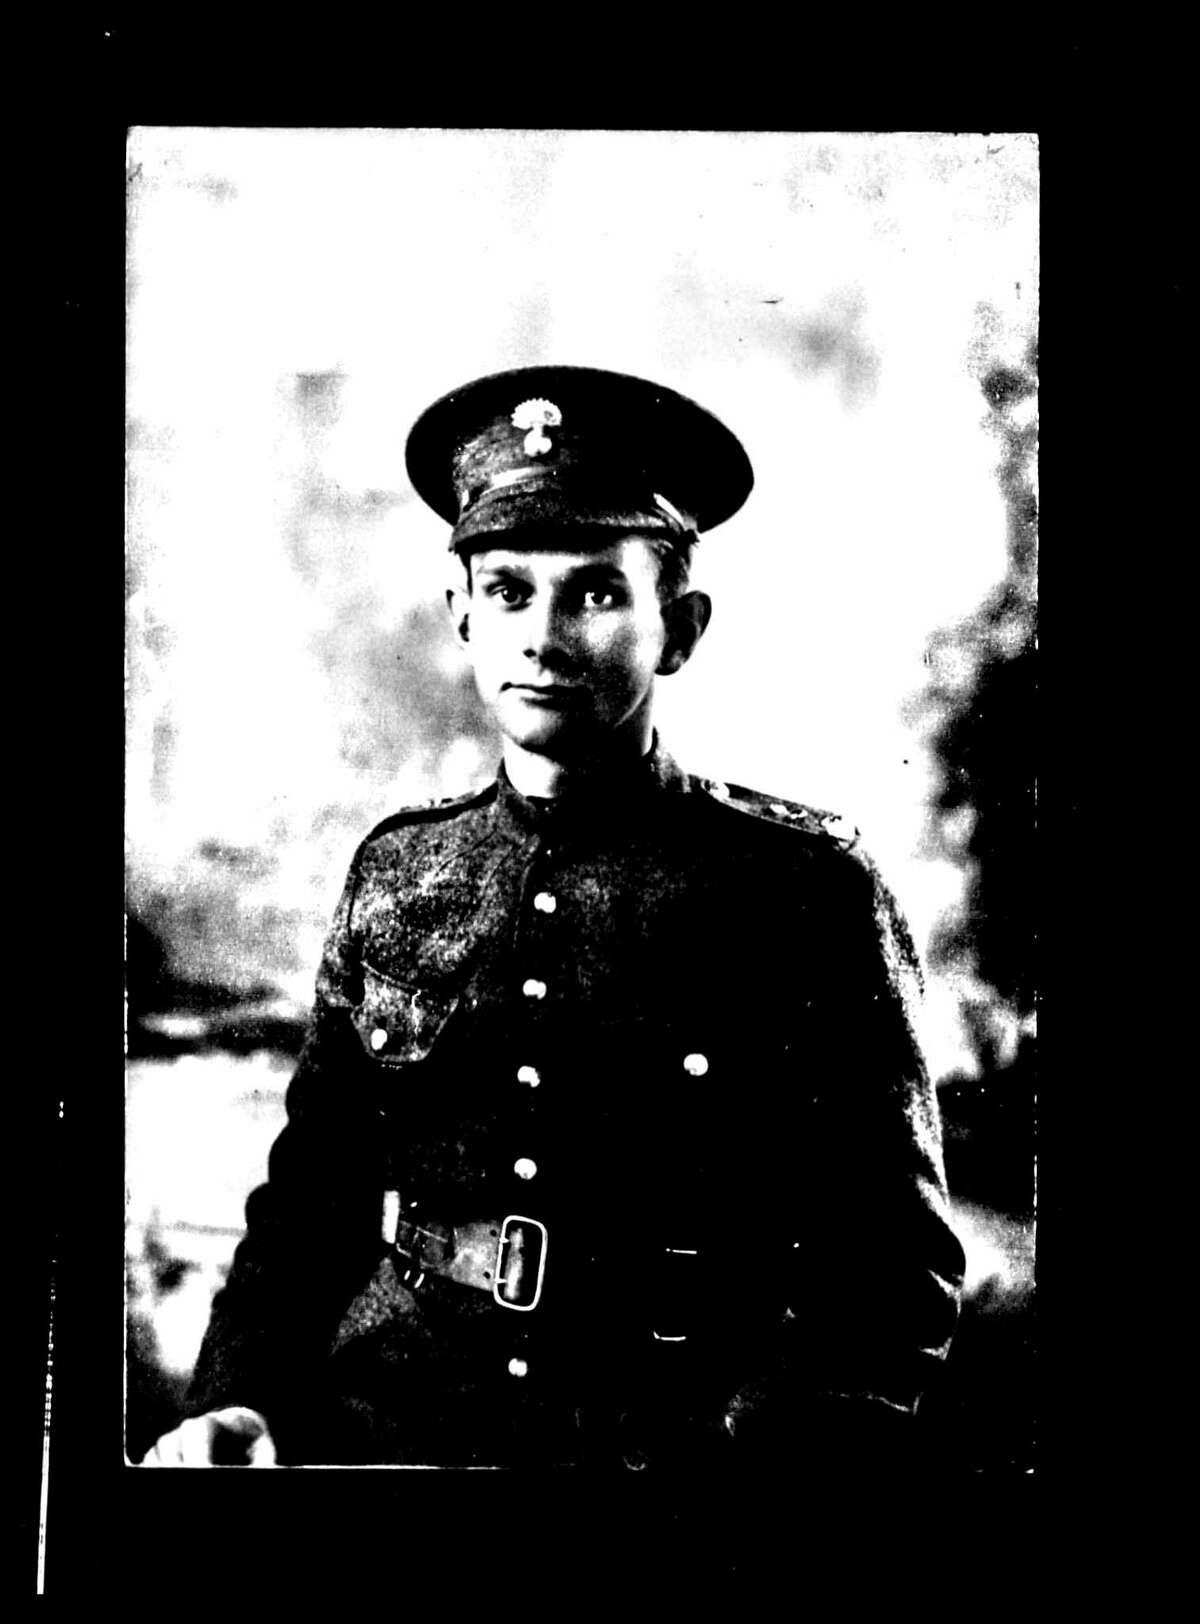 Burton J. Wellington was the first Troy resident to be killed in World War I, as well as the first Troy resident to enlist. He joined the Canadian Expeditionary Force in 1916. (New York State Archives)